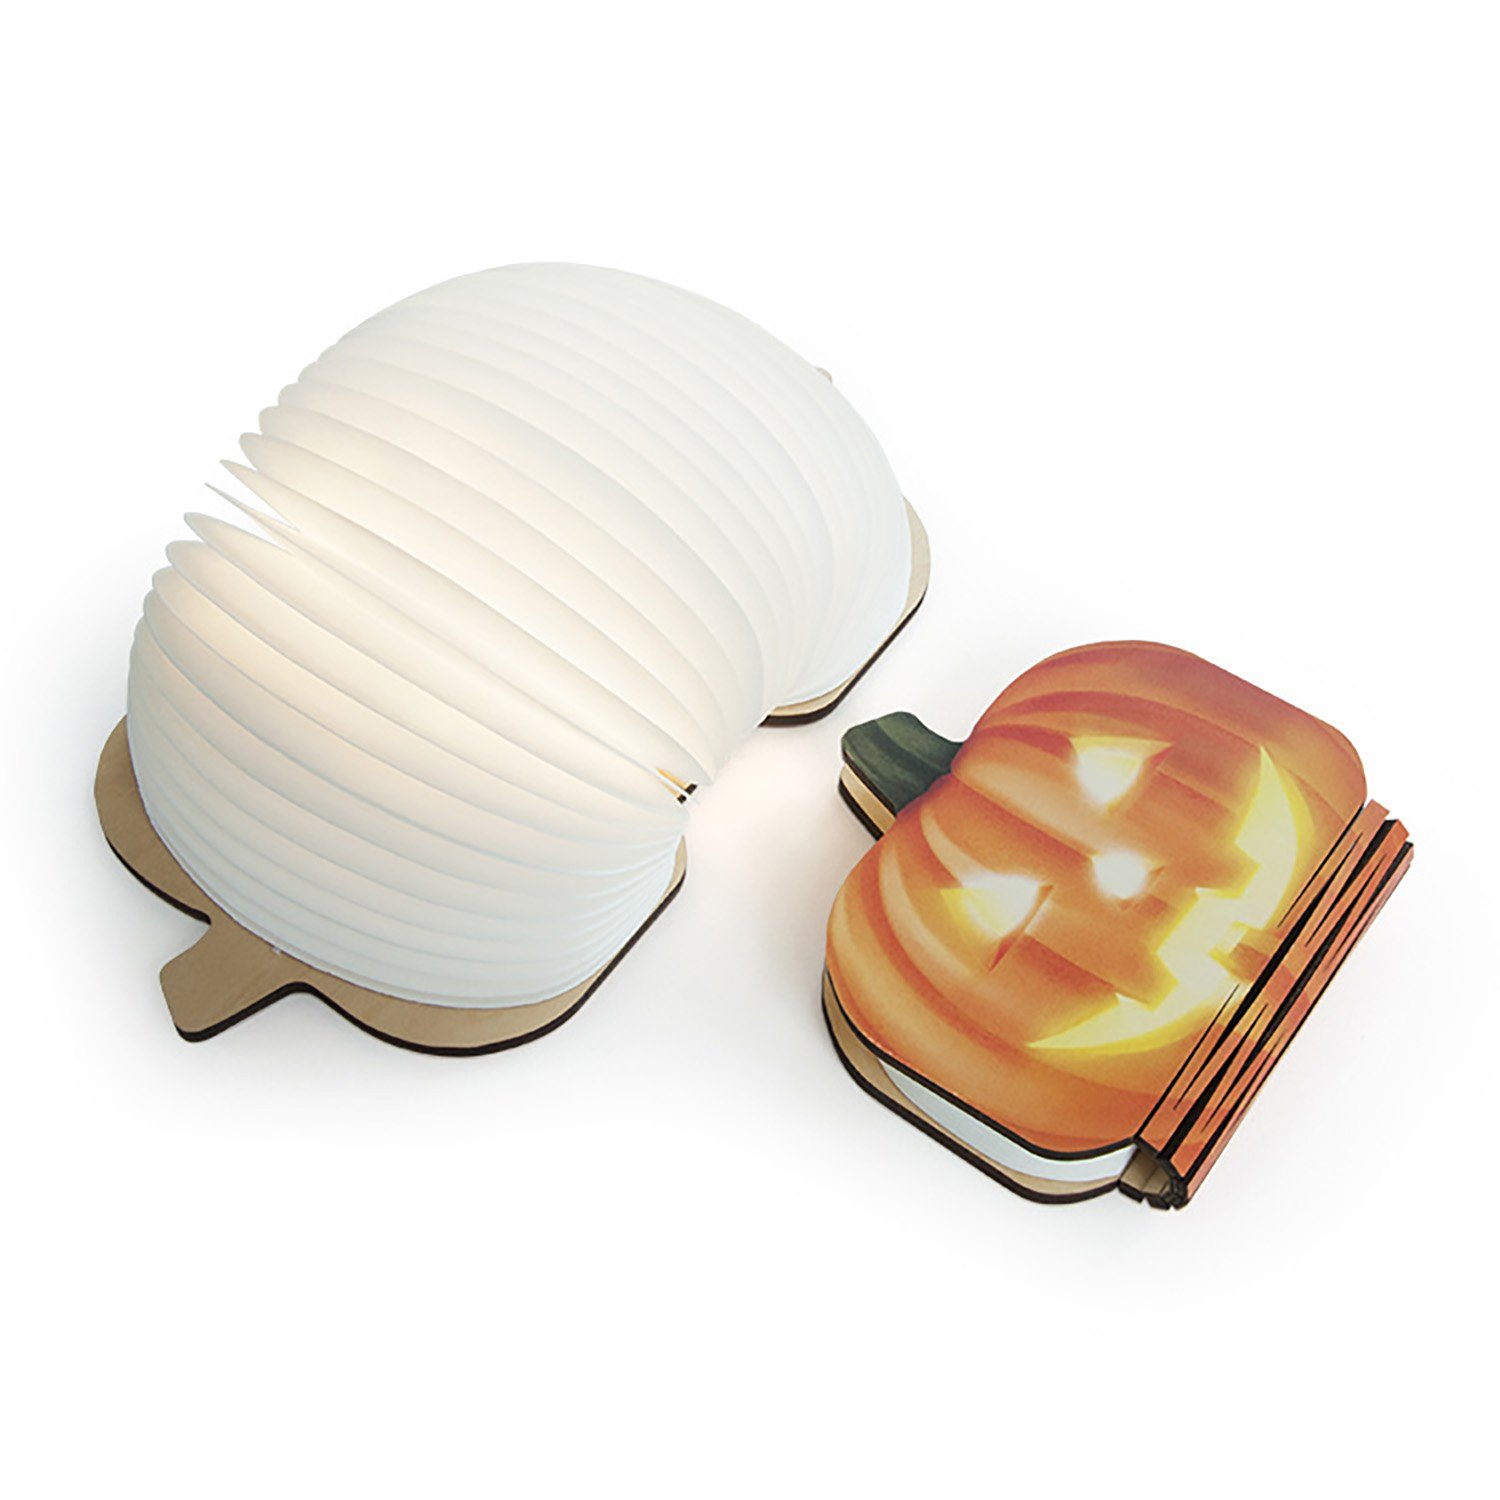 ONEVER LED Rechargeable Table Light, Foldable Color Changing LED Light Book Style Creative Decorative Night Light Wall Lamp (Pumpkin)